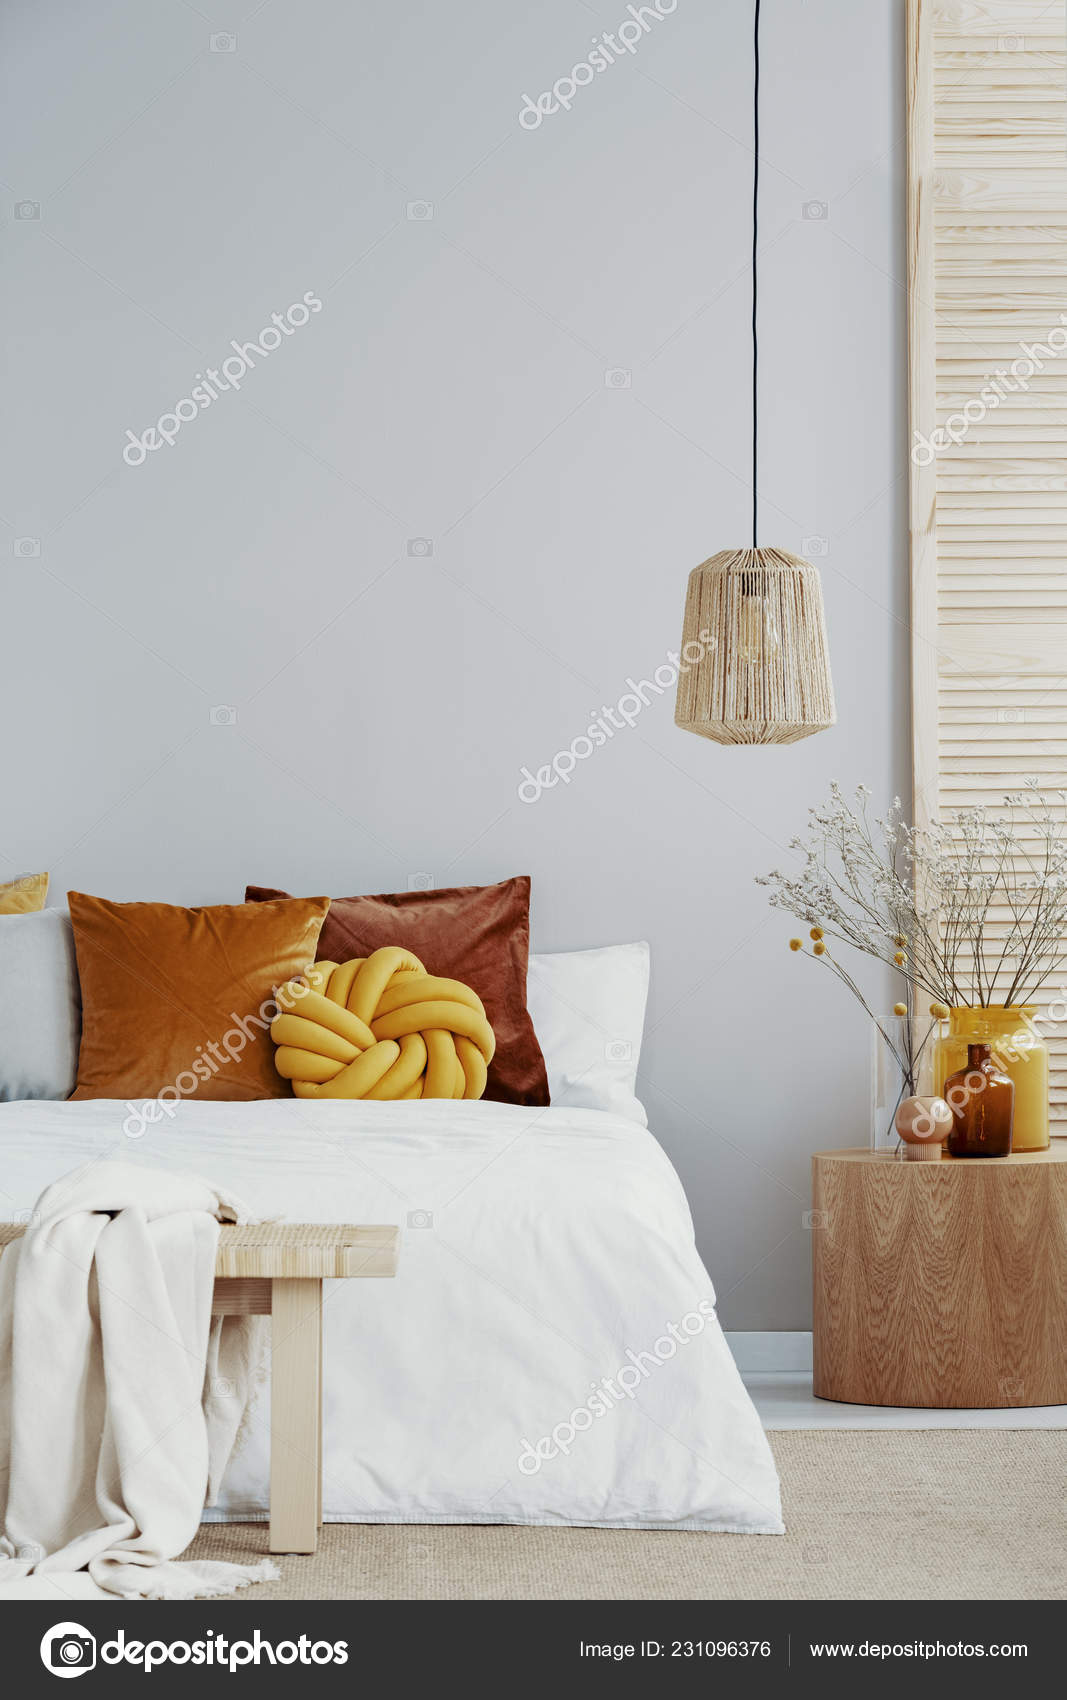 Yellow Knot Pillow White Bed Bright Bedroom Copy Space Empty Stock Photo C Photographee Eu 231096376